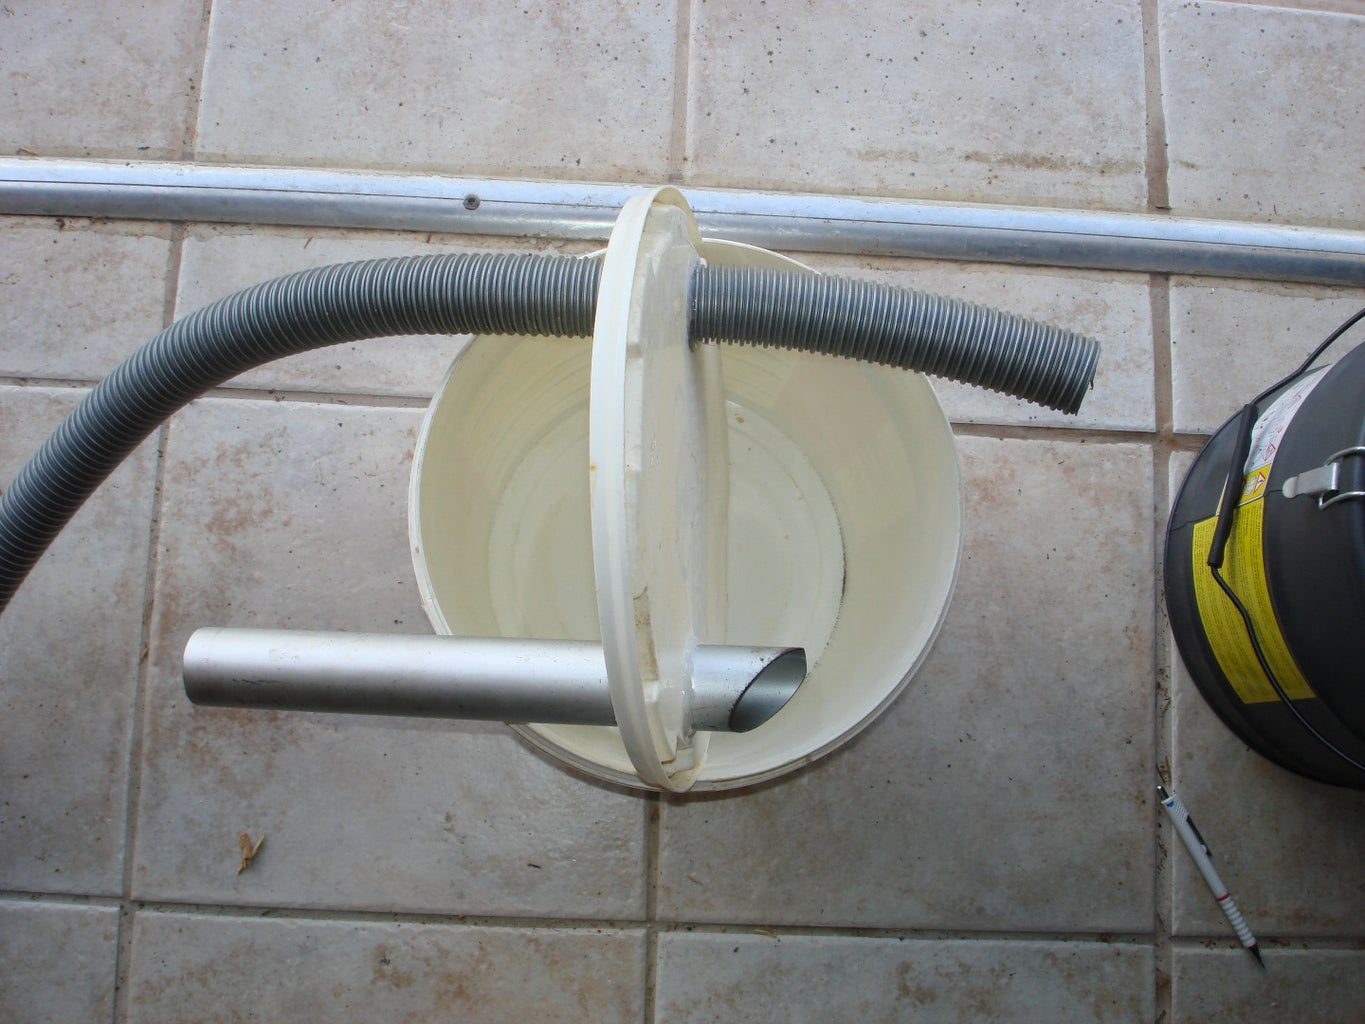 Connect the Hoses